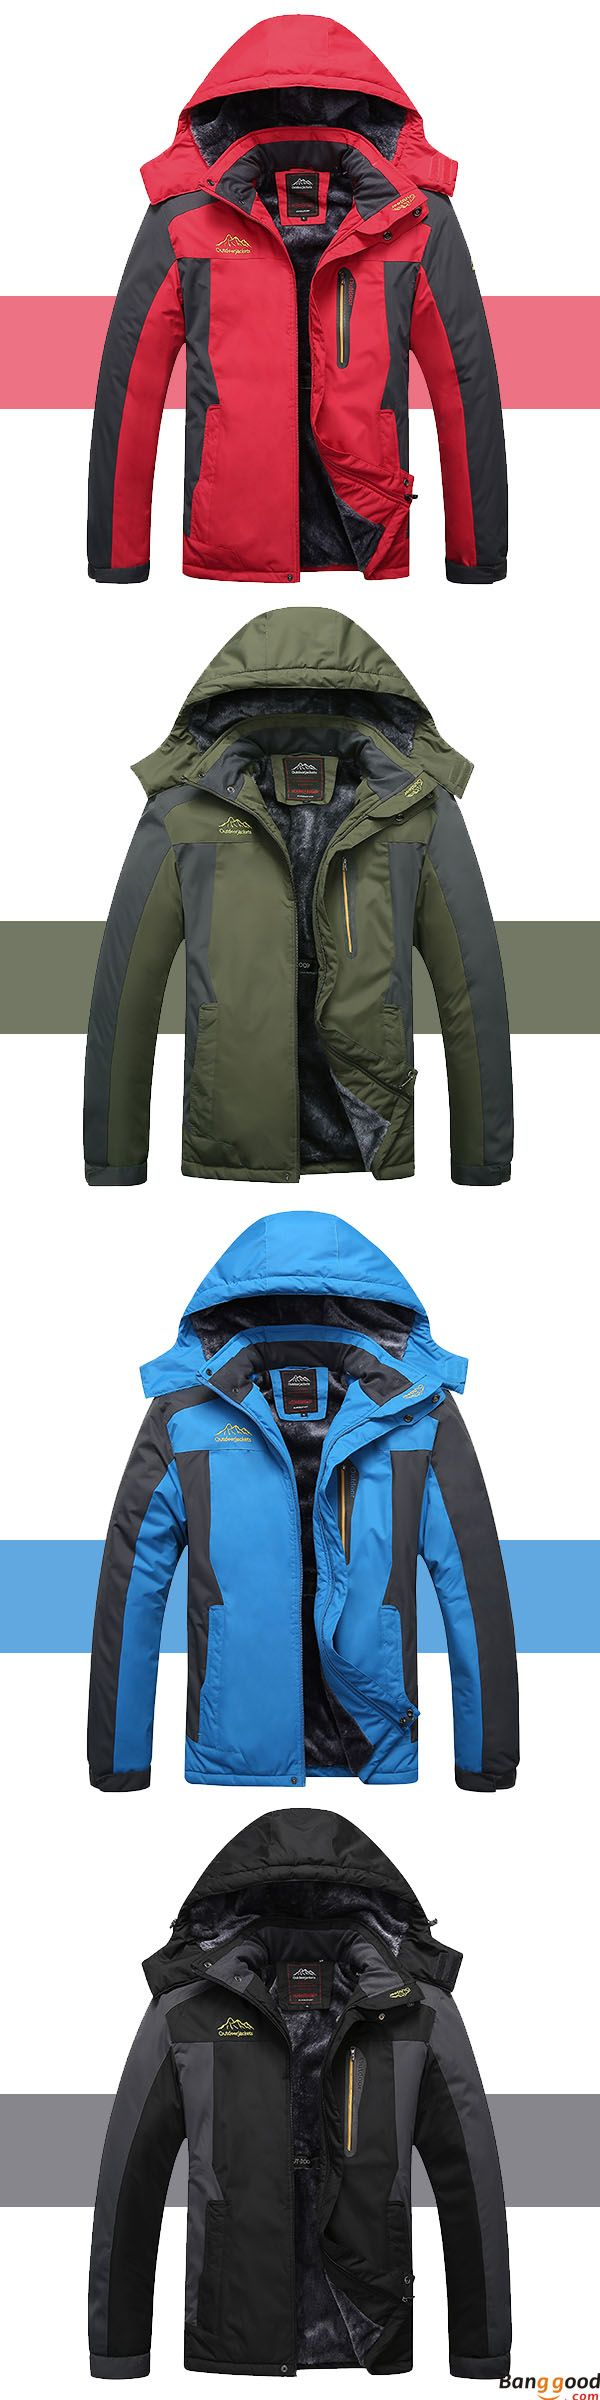 Epic Low Price + Free Shipping. Mens Outdoor Waterproof Windproof Fleece Plus Thick Warm Mountaineering Jackets Big Size S-7XL. Free Warm While Exploring the Nature. >>> To view further, visit now.